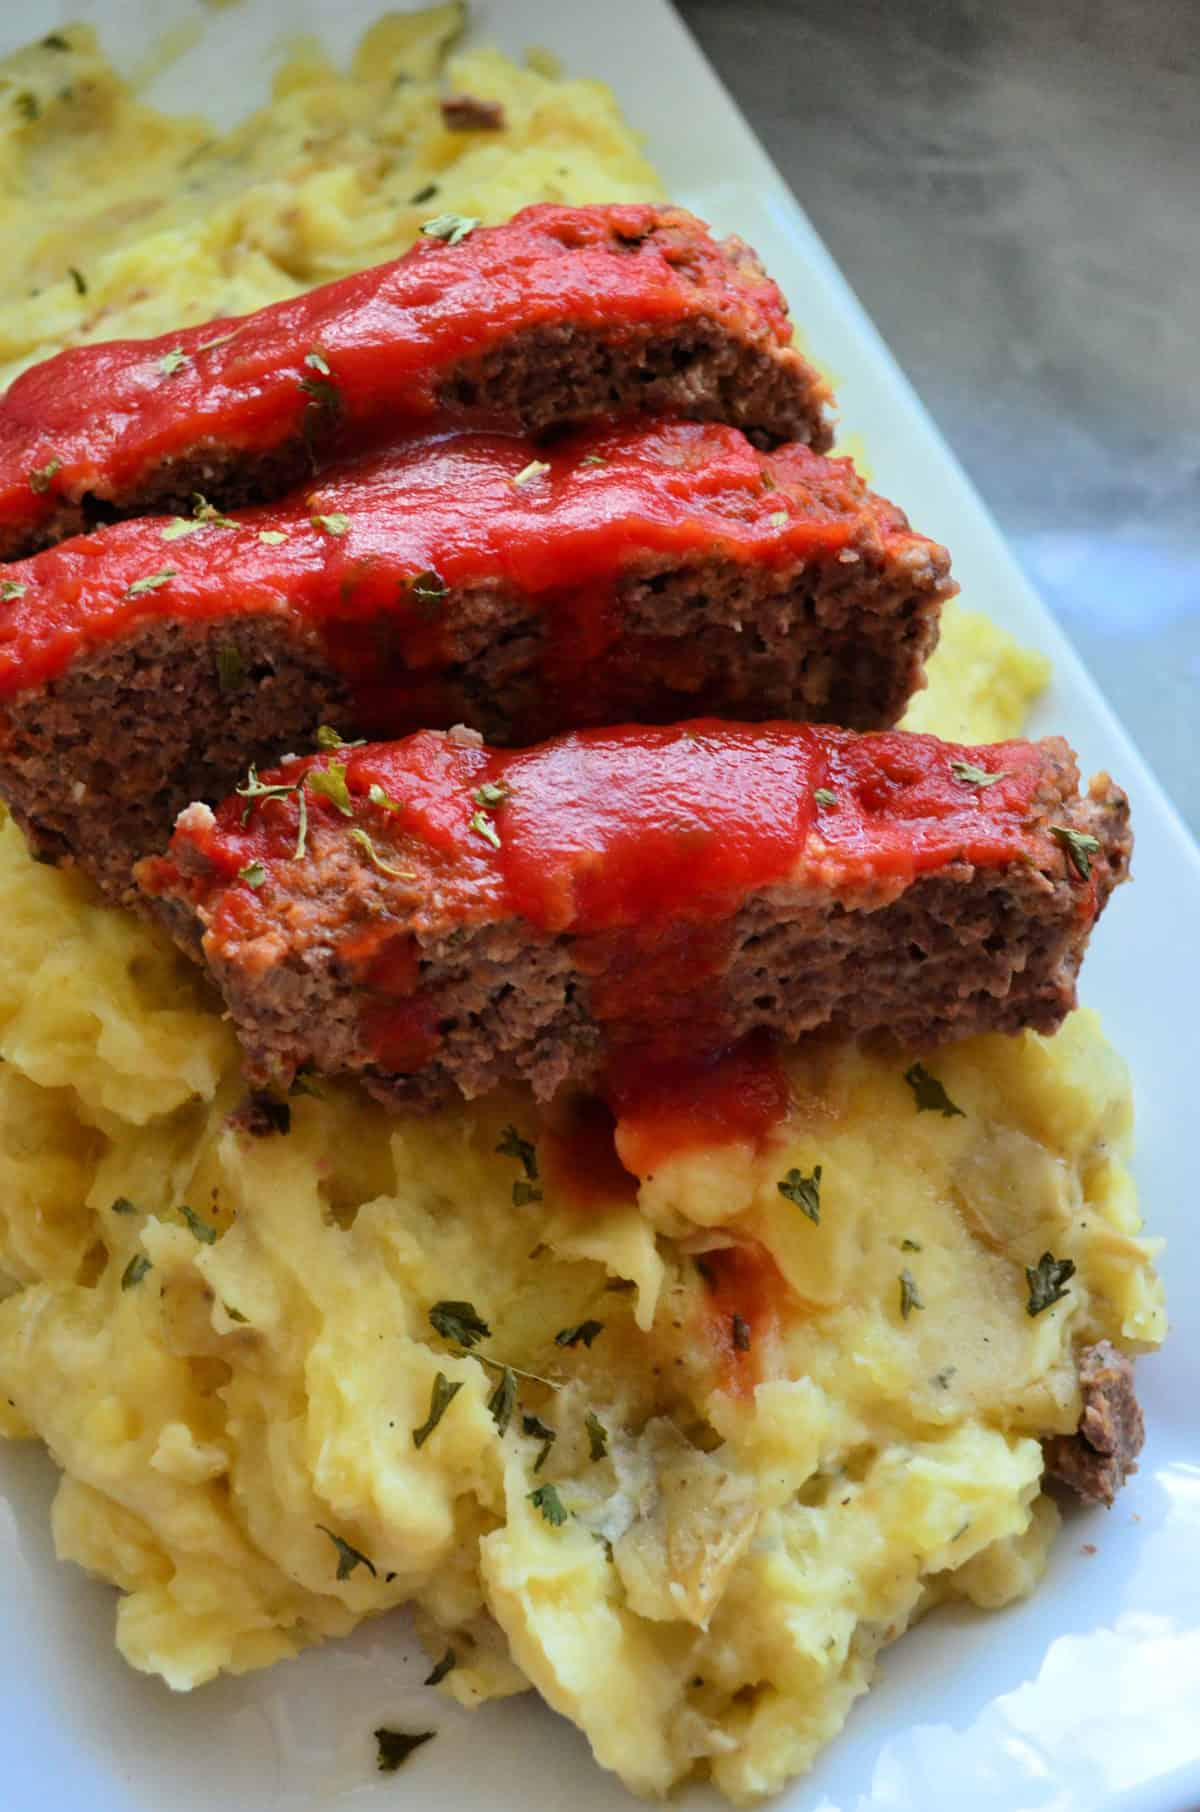 closeup of sliced meatloaf topped with herbs and red sauce over mashed potatoes.